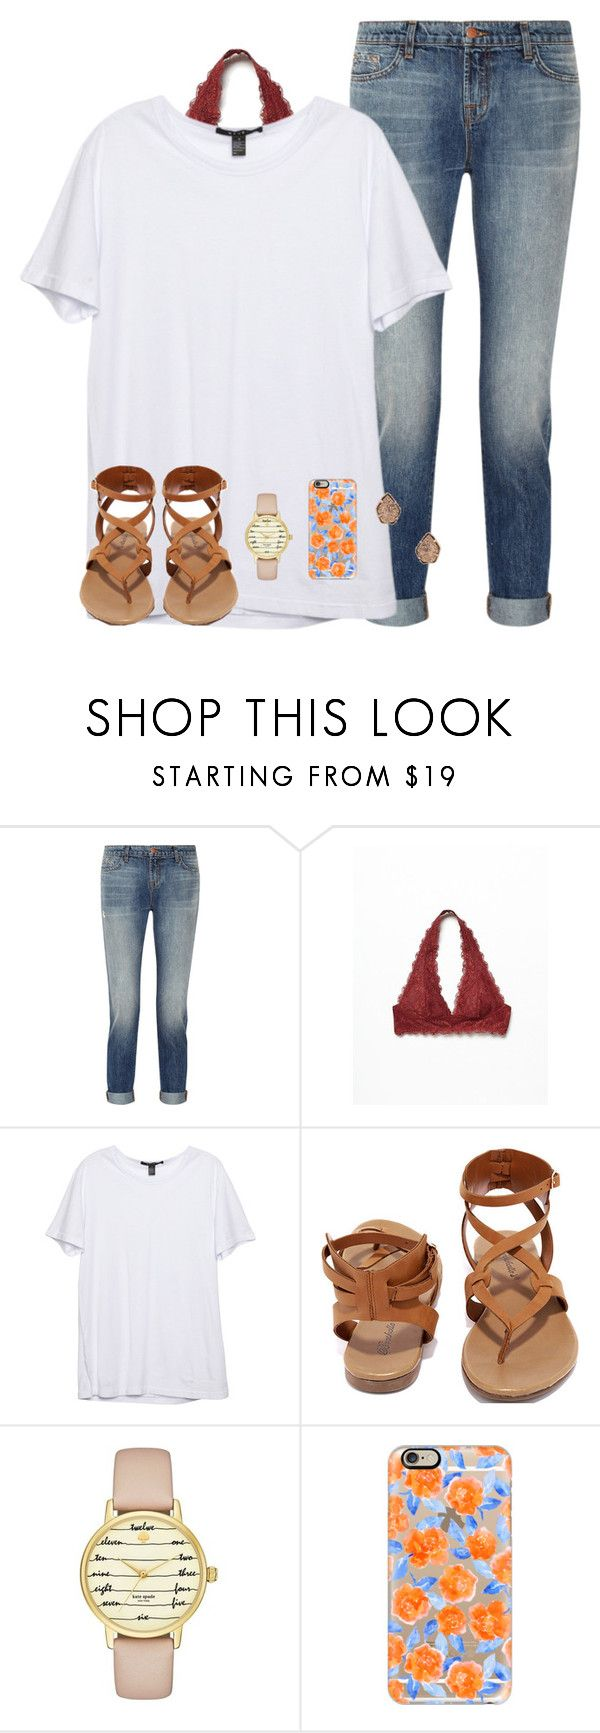 """this doesnt match at all lol"" by serenag123 ❤ liked on Polyvore featuring J Brand, Free People, Breckelle's, Kate Spade, Casetify and Kendra Scott"